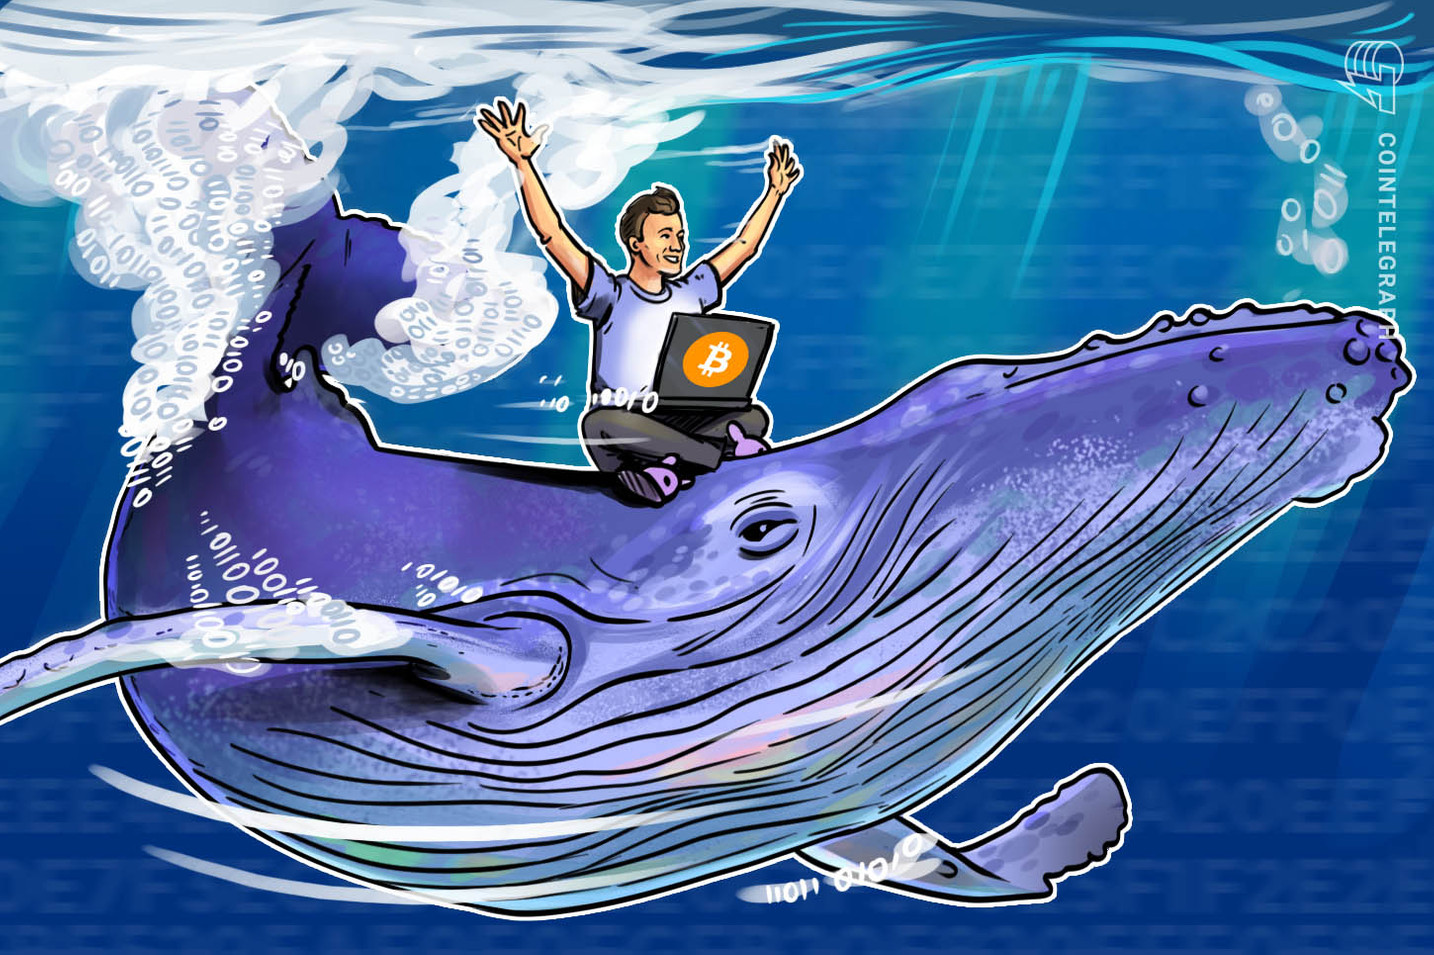 Bitcoin Price Drop to $8.9K Caused by Whales Selling at Major Exchanges